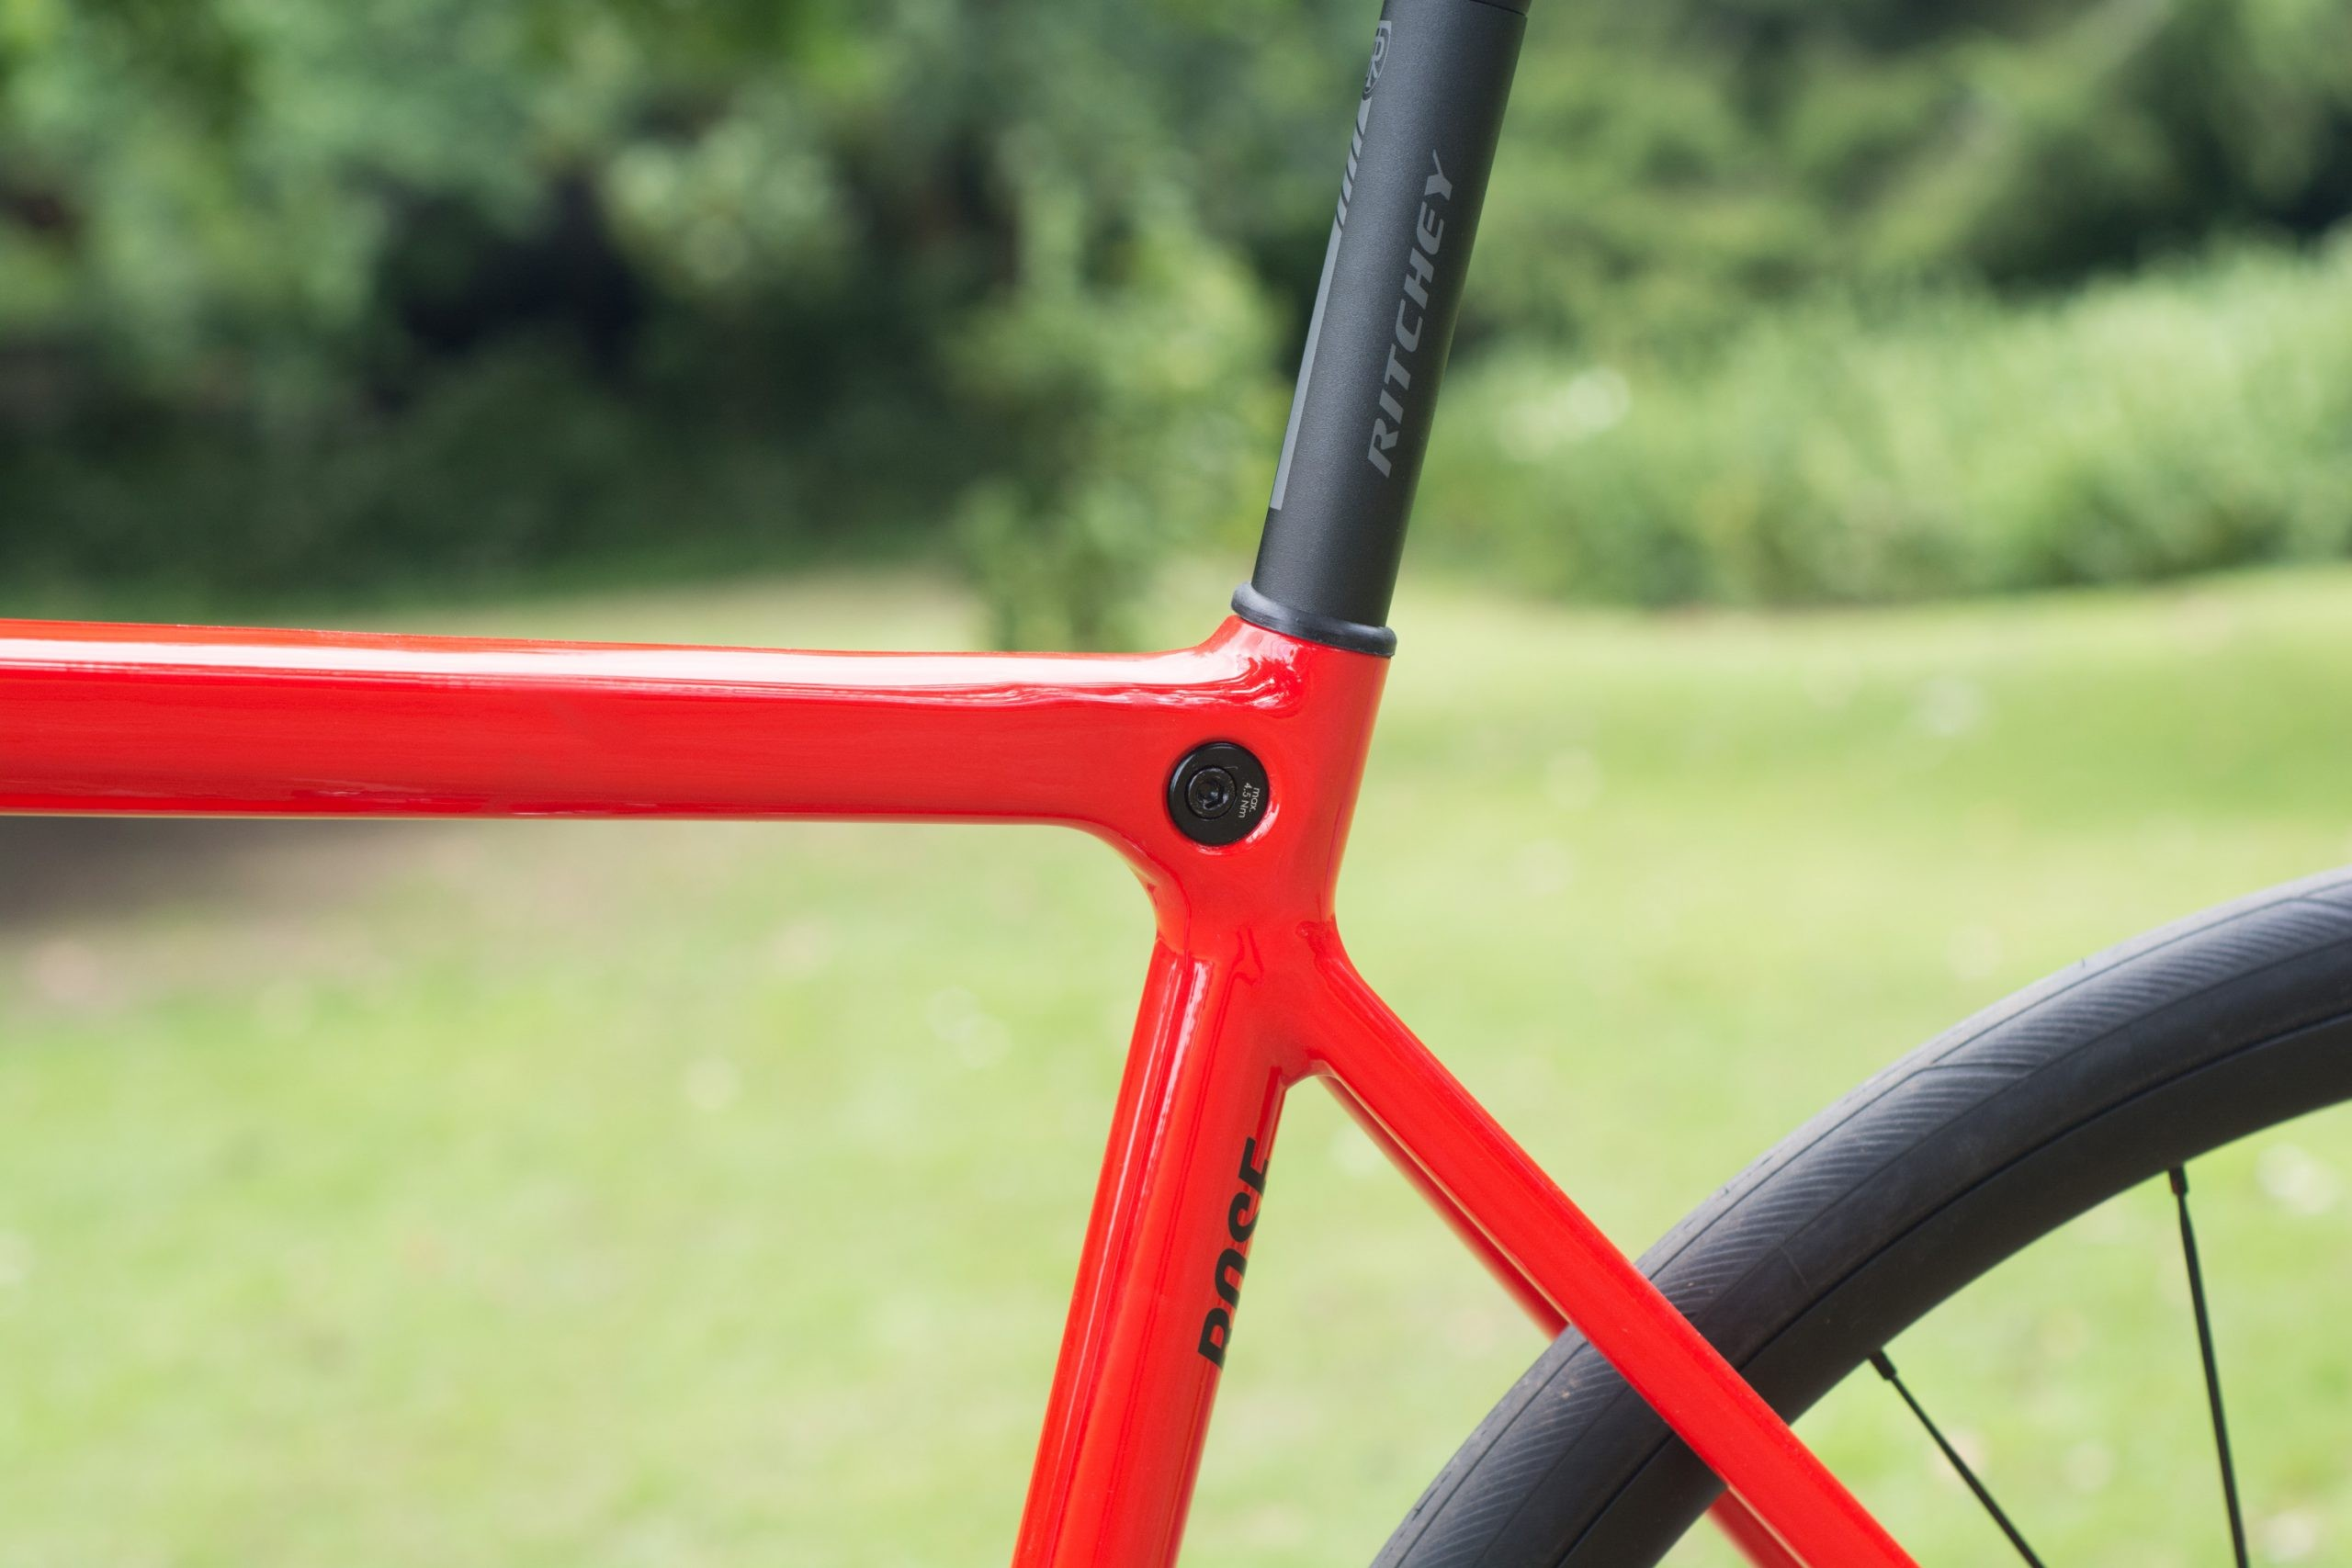 The new seat clamp design is very tidy.